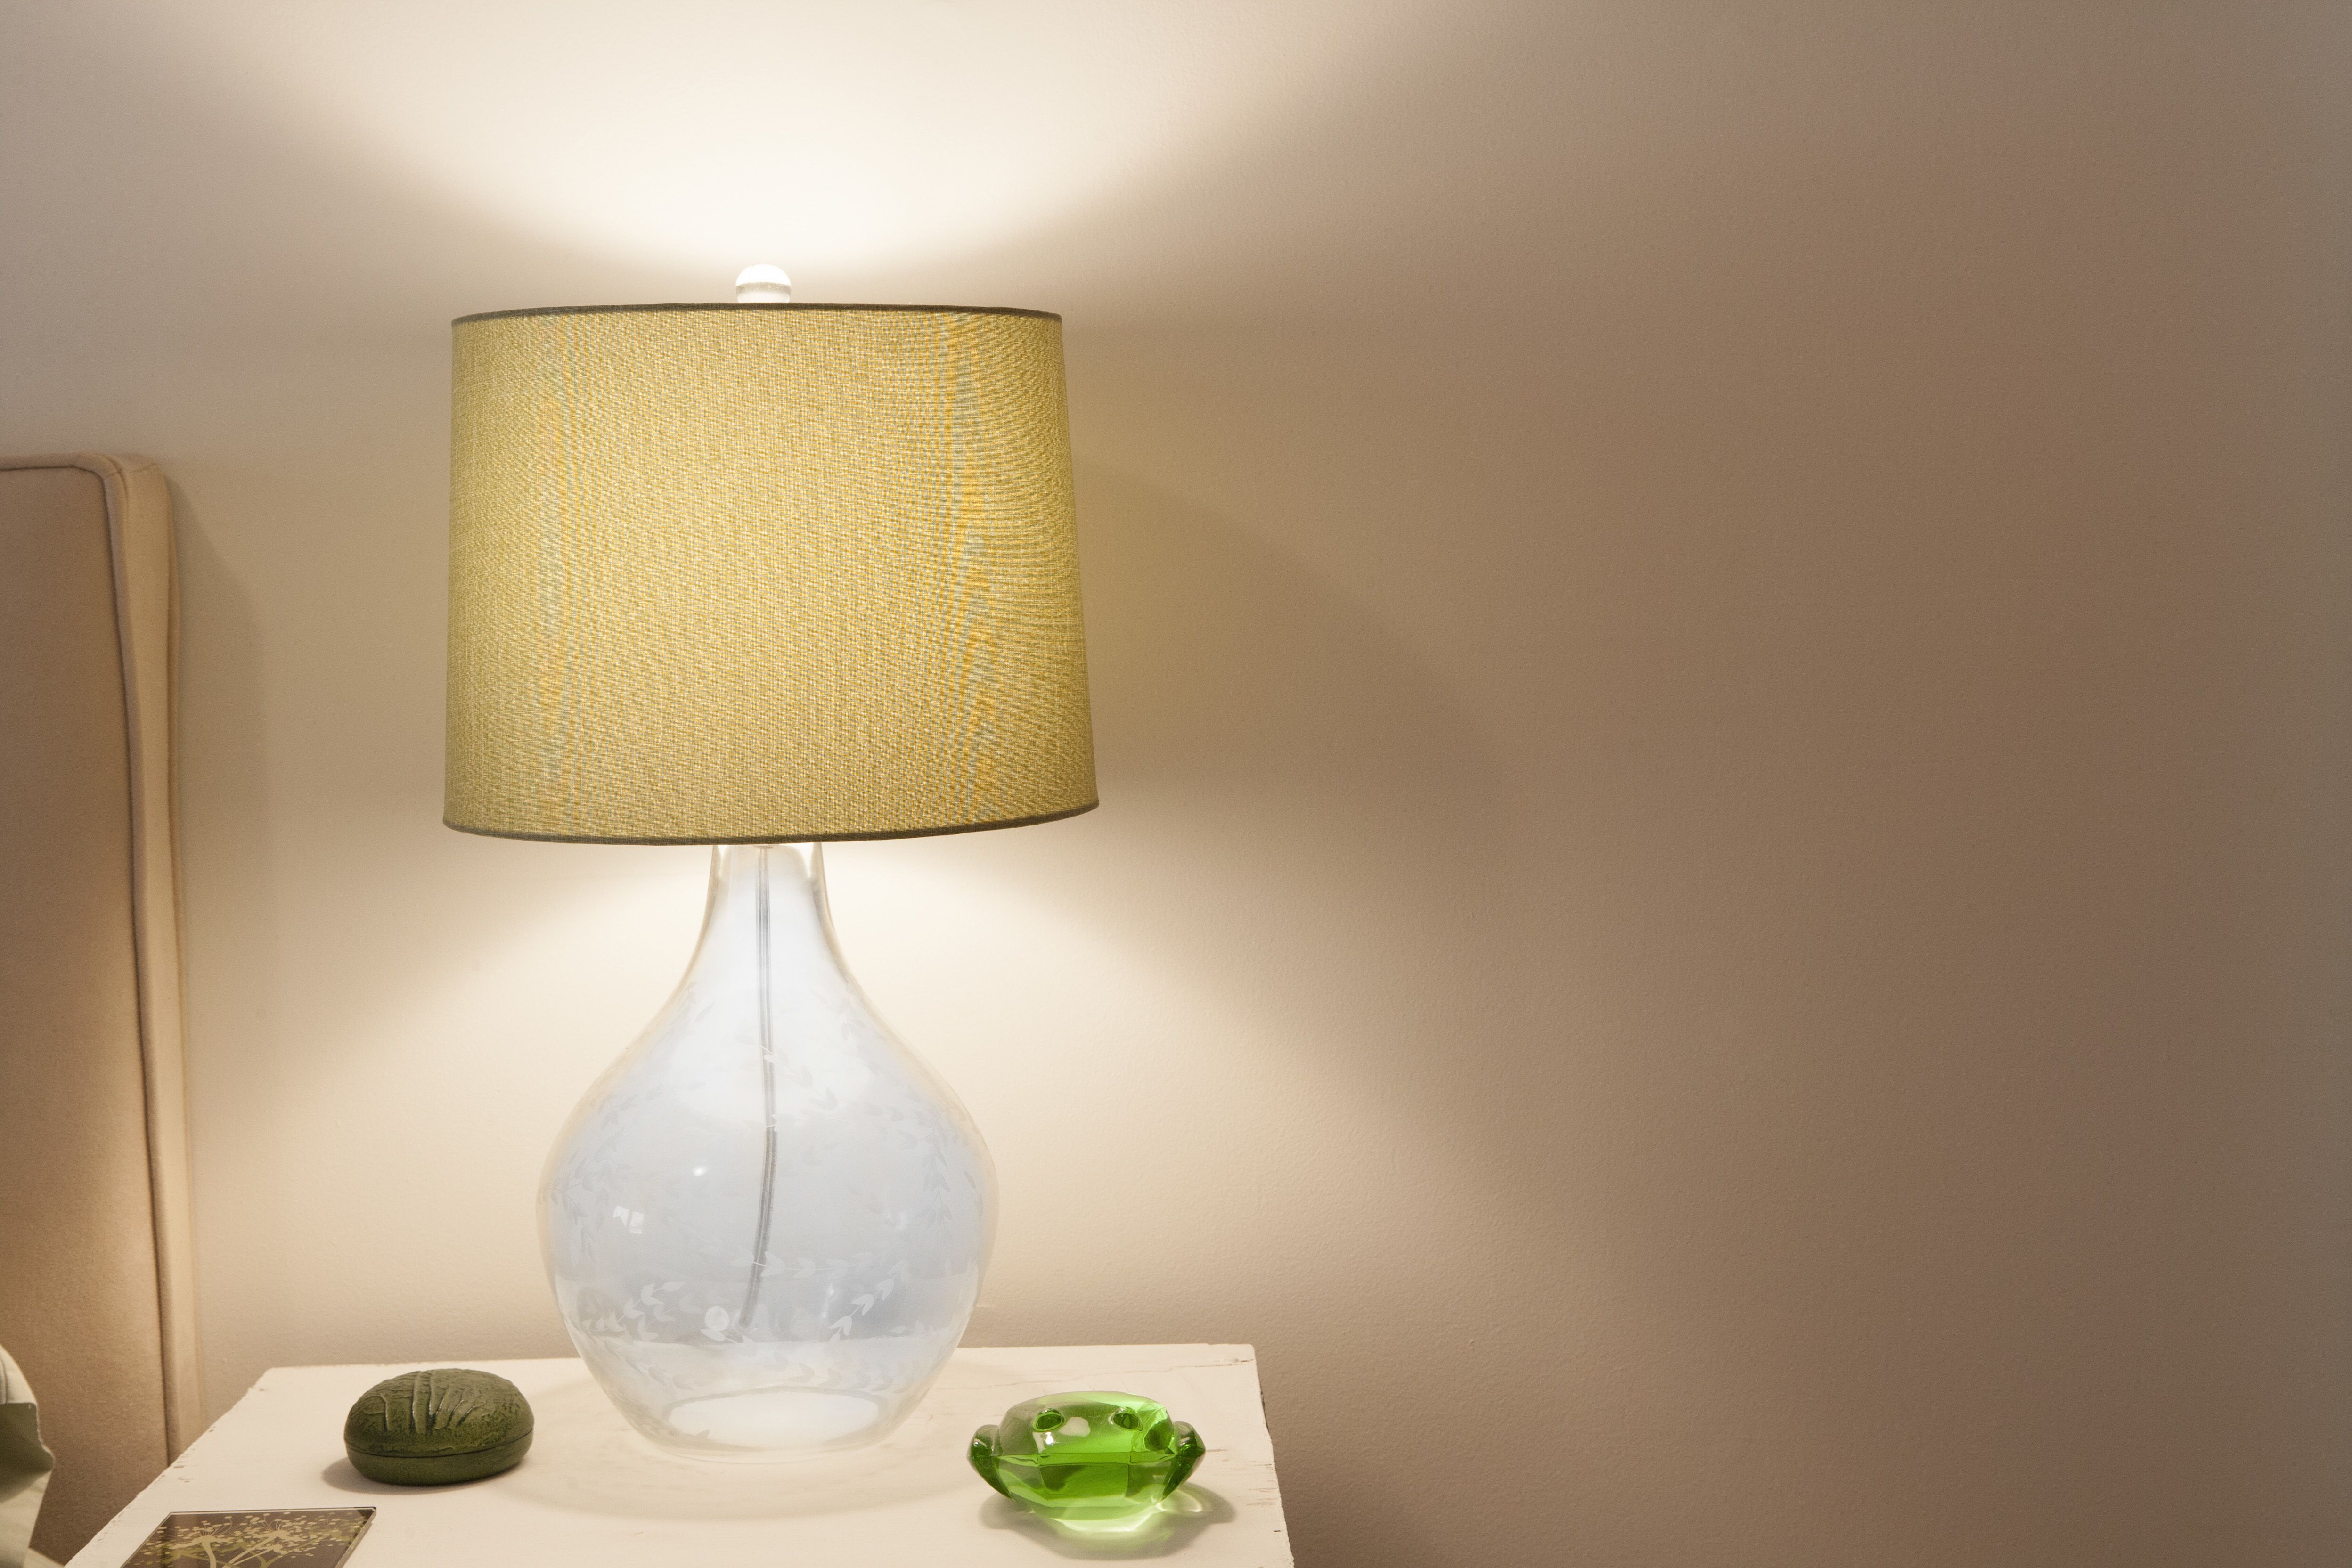 How to choose a lamp and the right size lampshade 5 steps to choosing the right lampshade aloadofball Gallery